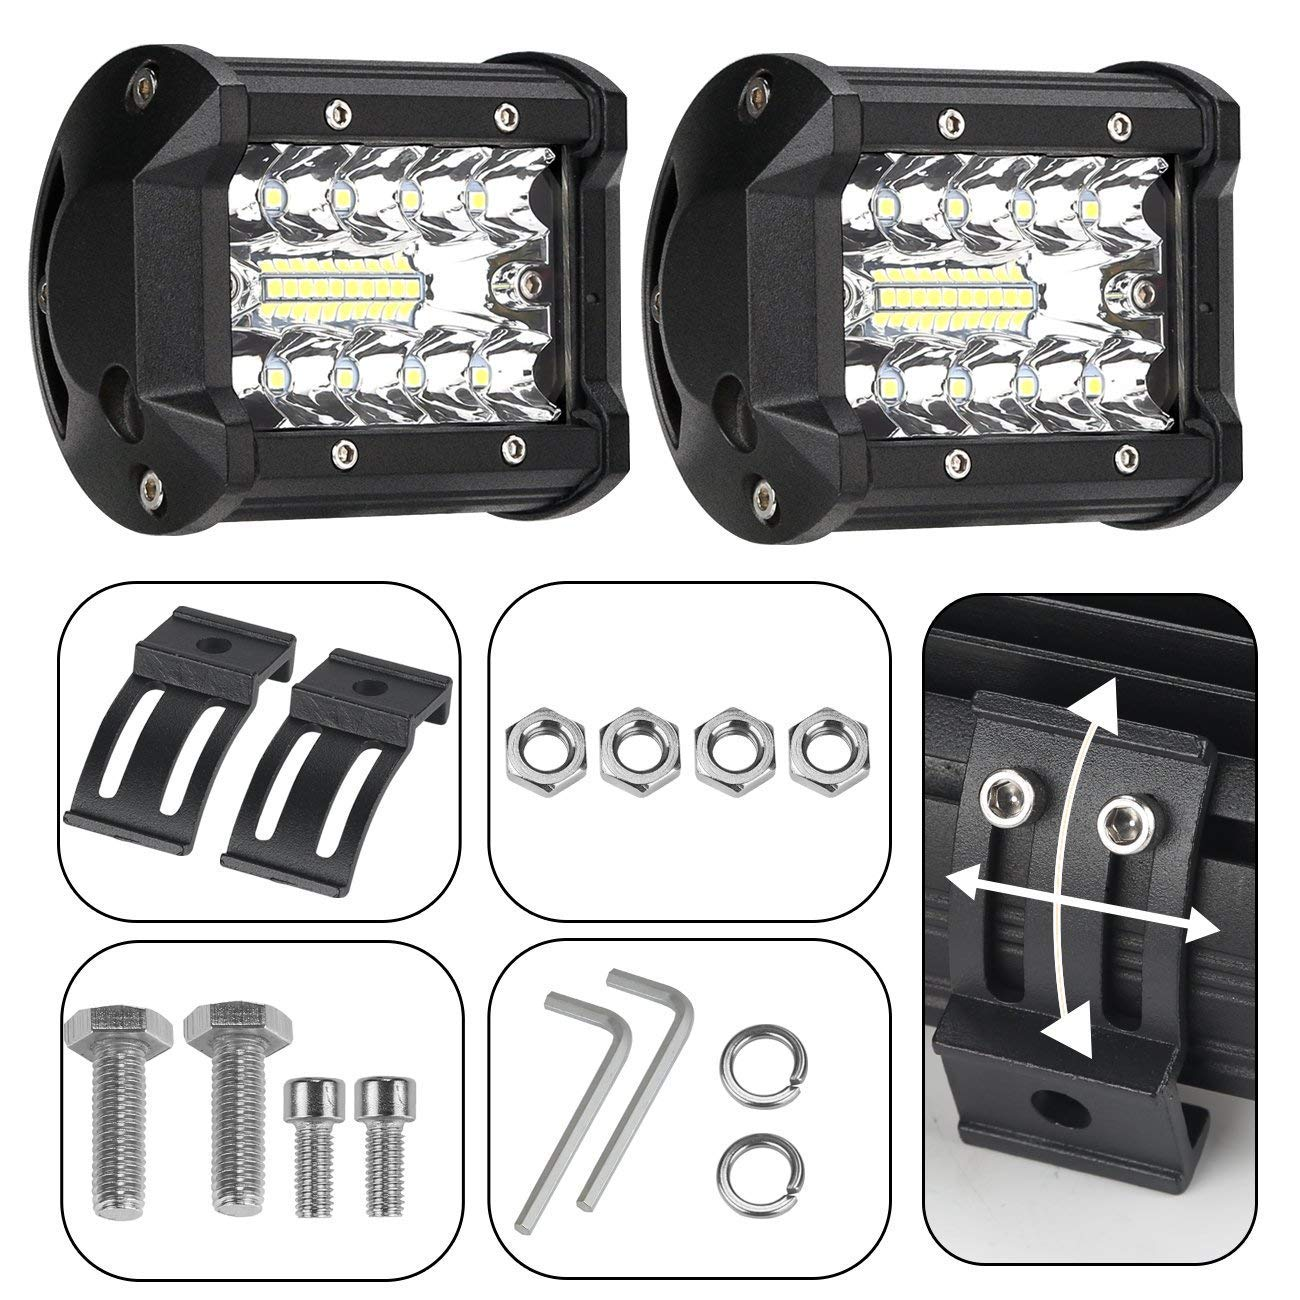 TALMYT LED Light Bar Off Road Lights, 2pc 120w 12v Led Spotlight 12000lm Boat Lights Truck Lights Motorcycle Lights Waterproof Lights Mounting Brackets SUV,Marine,4 inch,White,2 Years Warranty